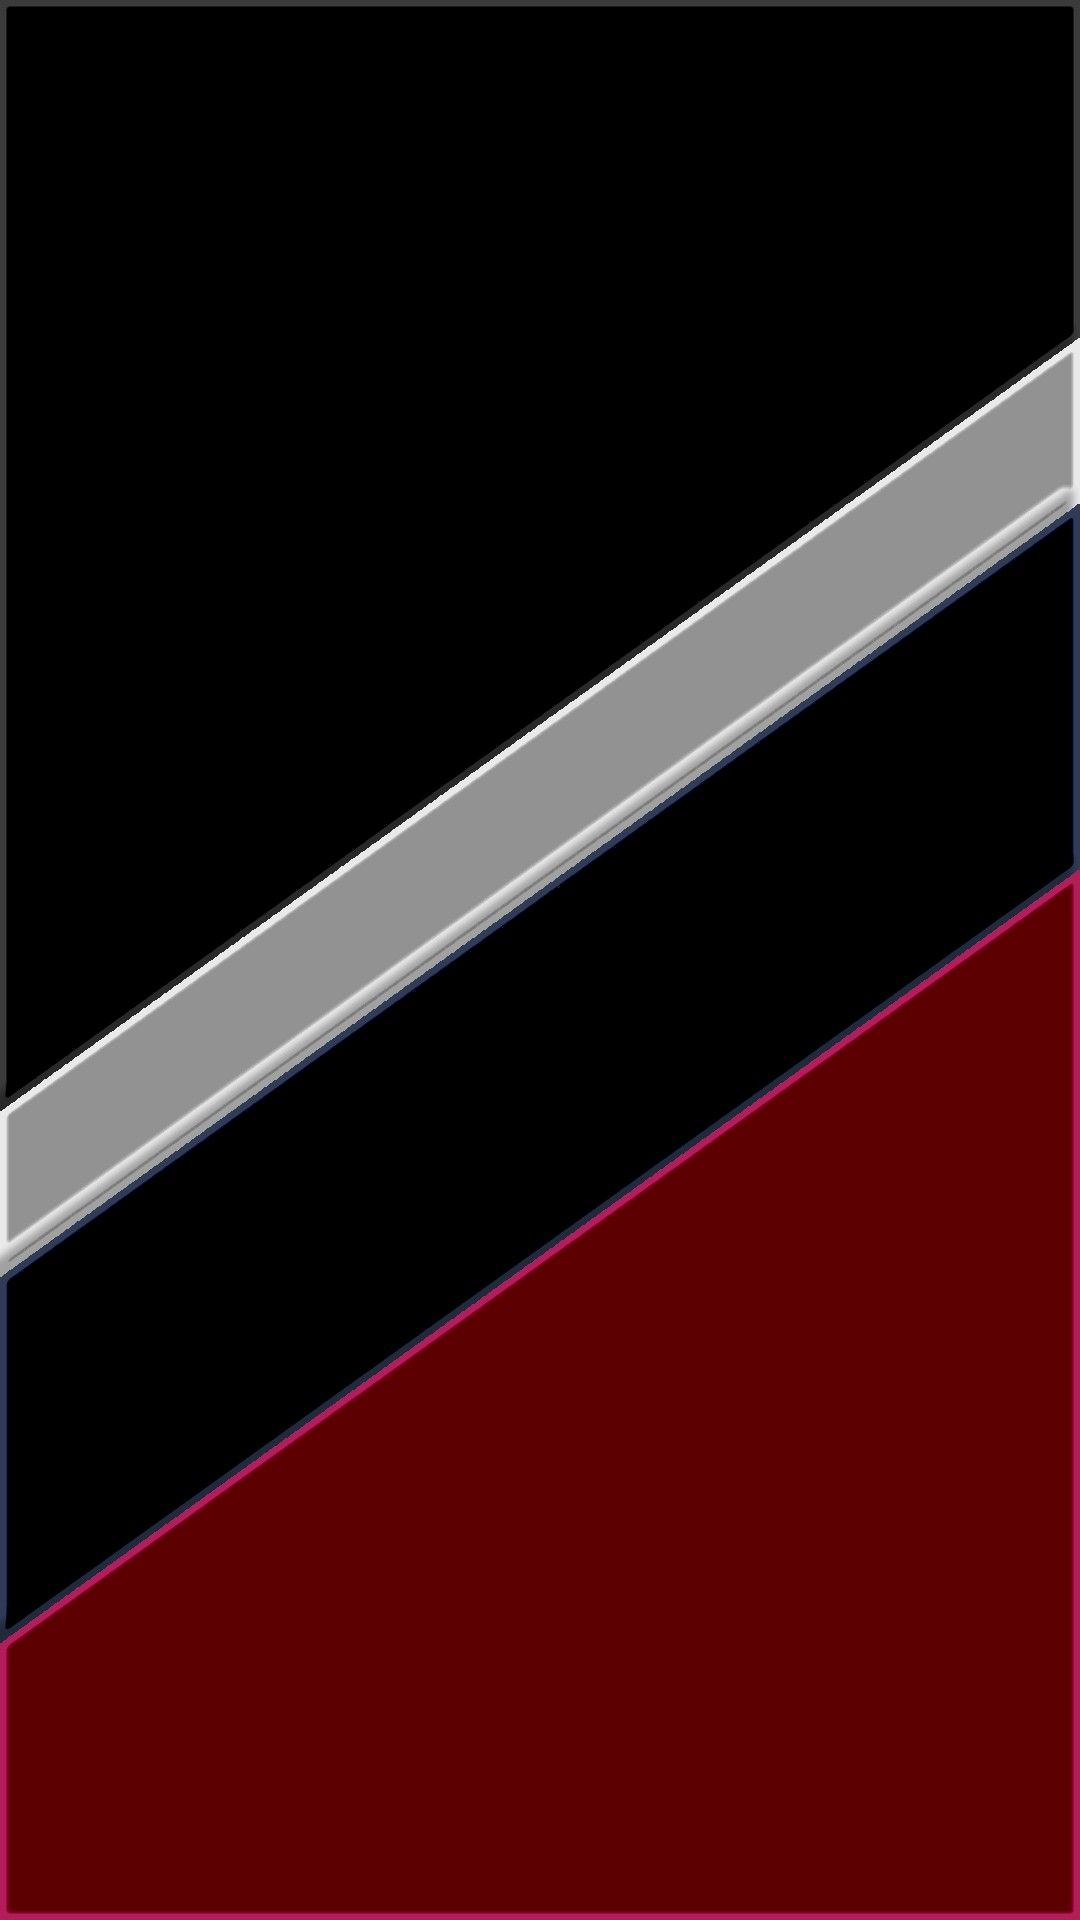 Red And Black Abstract Wallpapers Top Free Red And Black